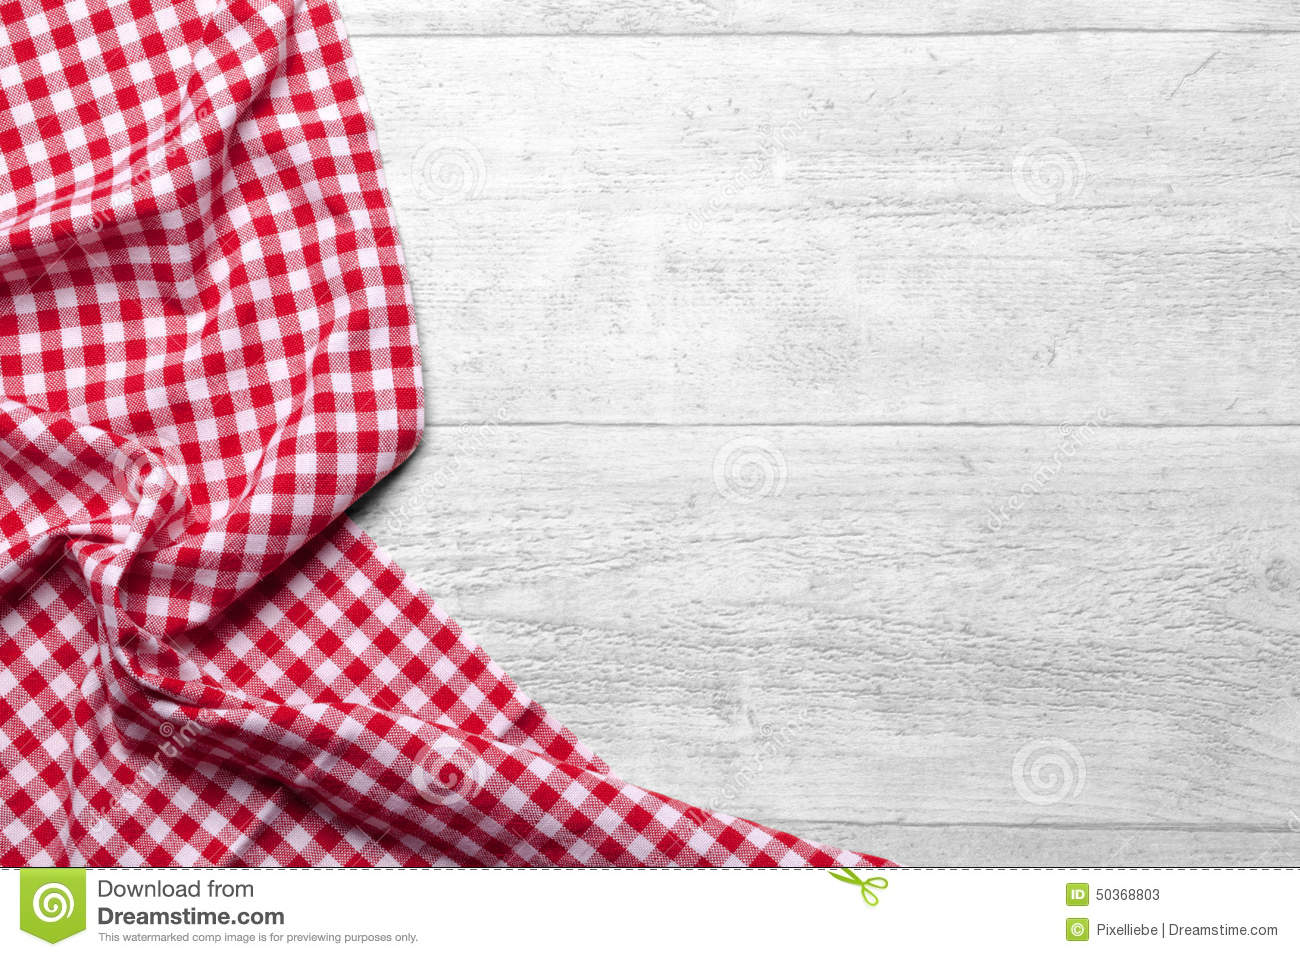 kitchen-table-background-wooden-red-checkered-tablecloth-50368803.jpg